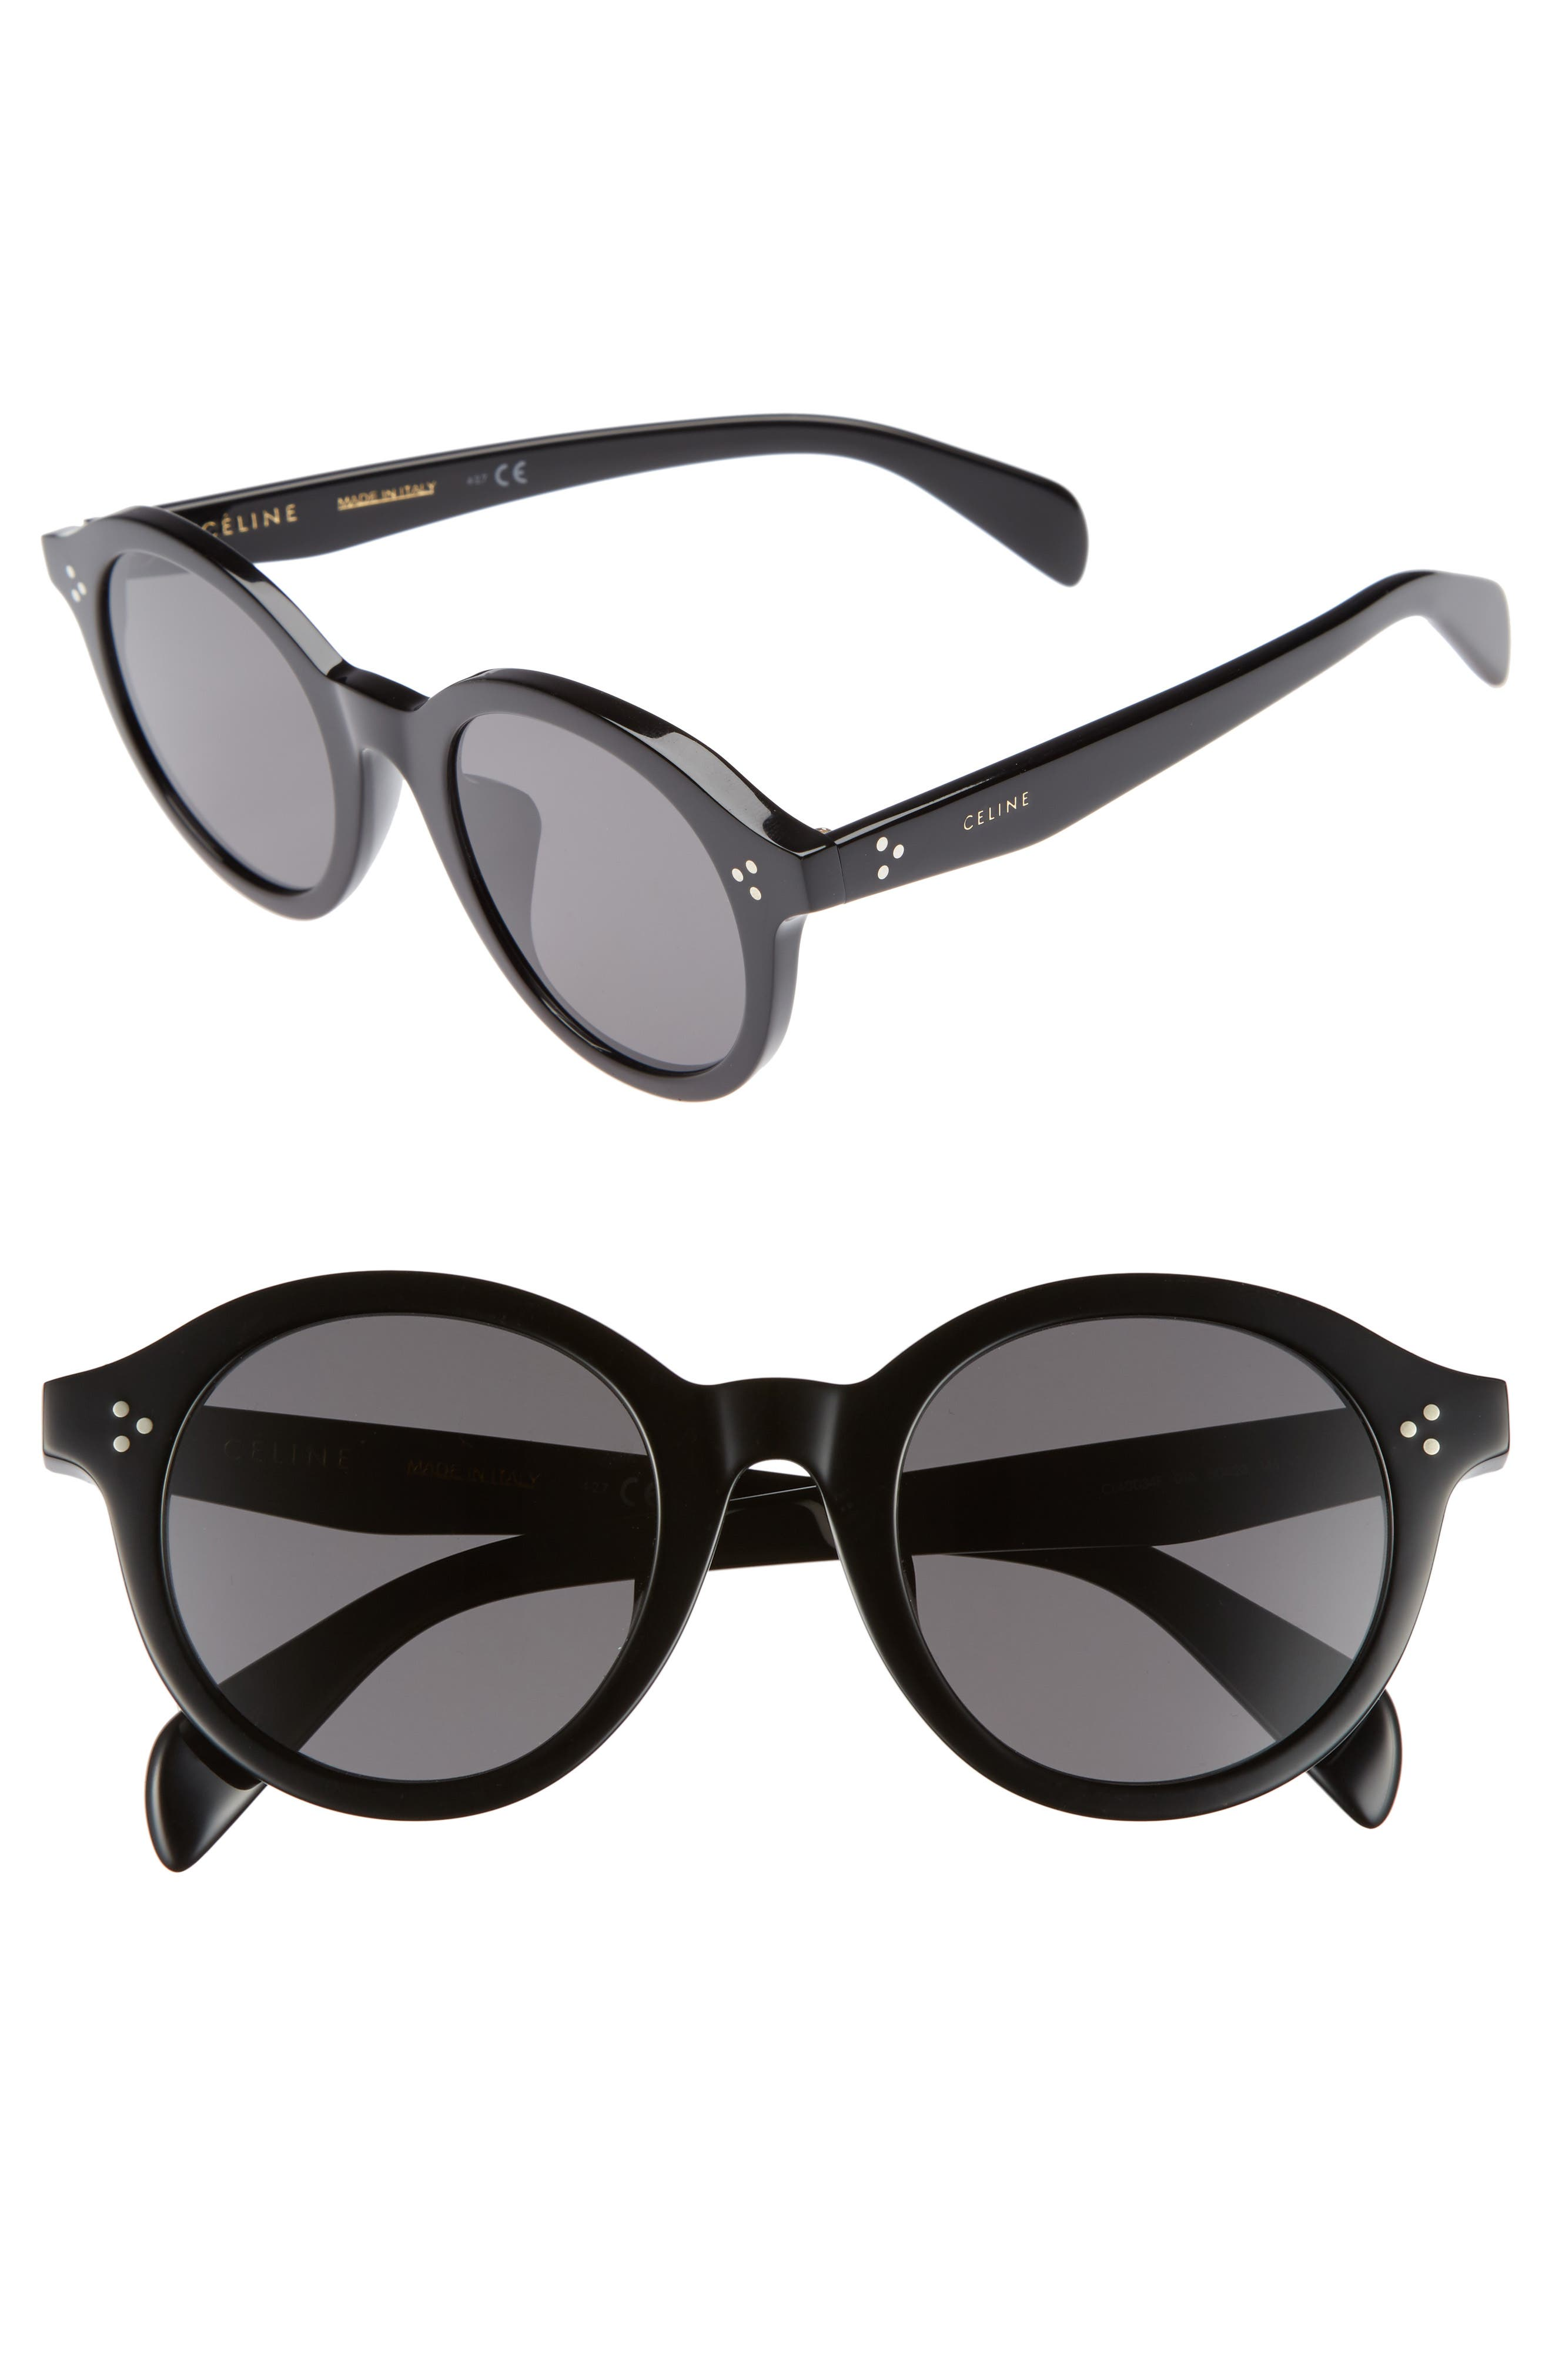 Alternate Image 1 Selected - Céline Special Fit 50mm Round Sunglasses